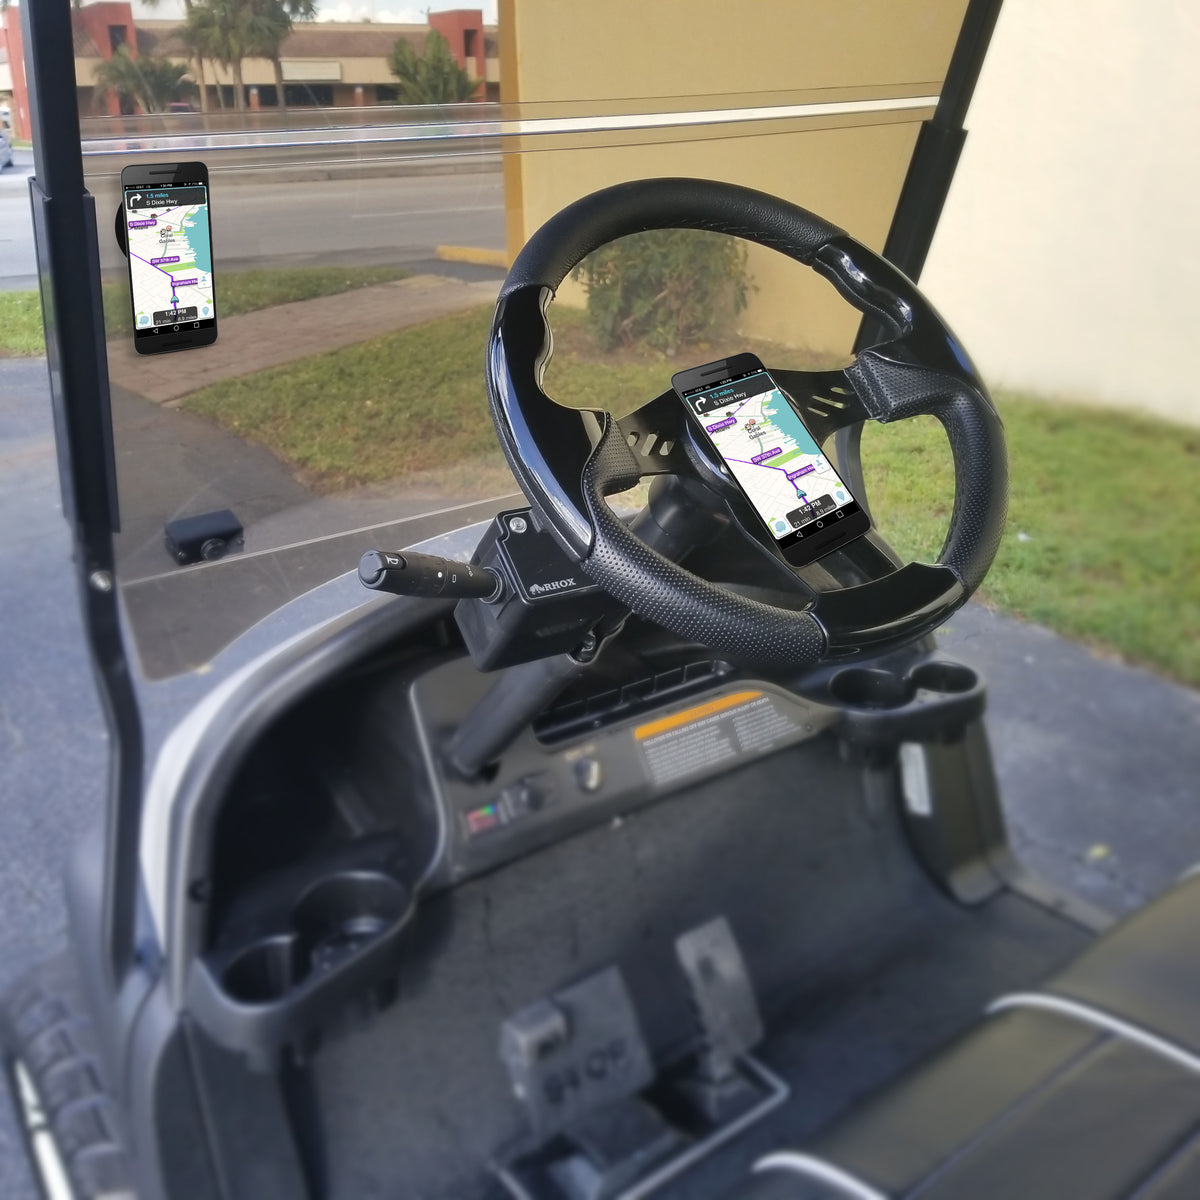 Perfect for Golf Carts, use on your steering wheel or place it on your windshield. It's great for navigation or range finder.